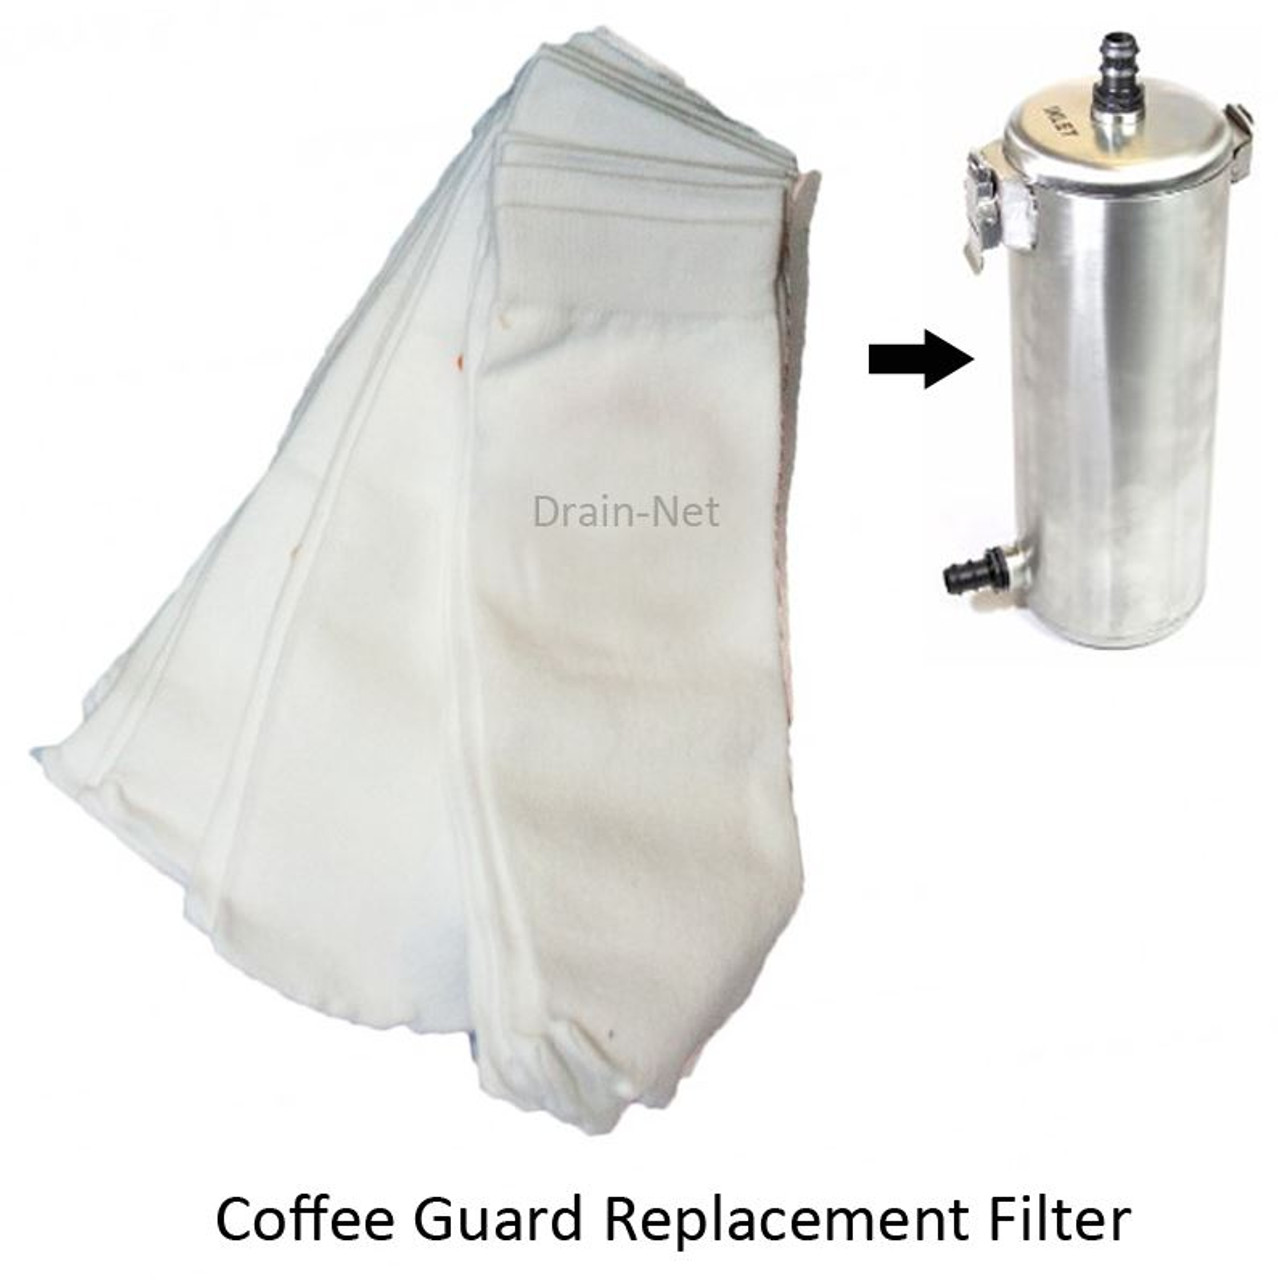 Coffee Guard Replacement Filter Socks (5-Pack)